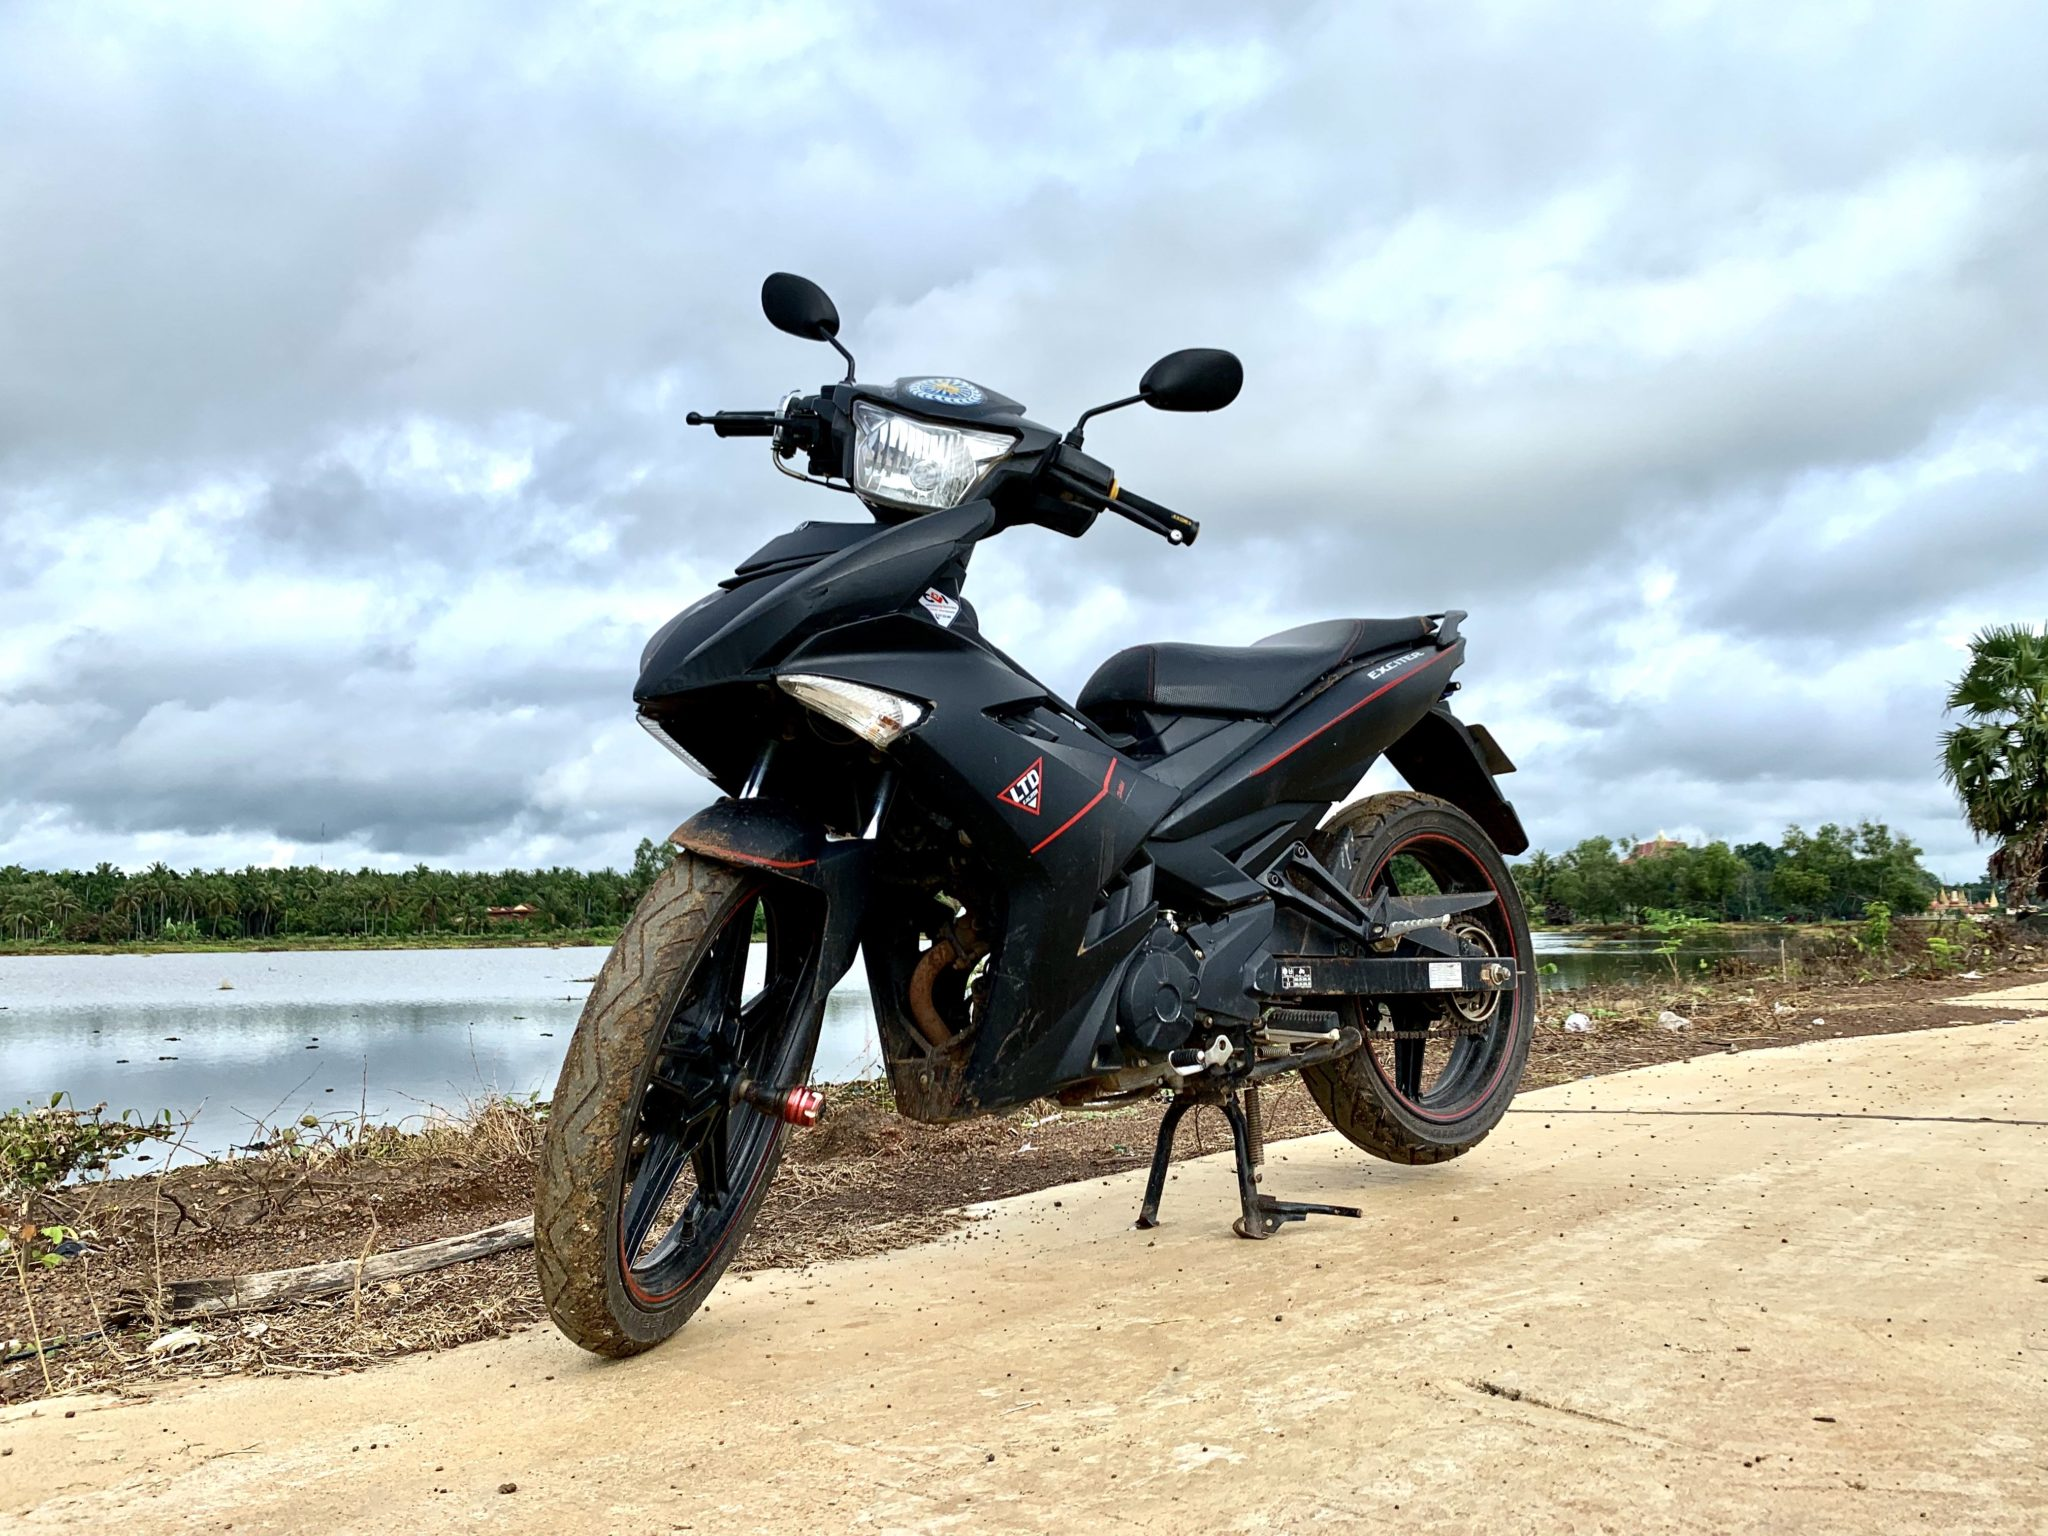 Exciter 017 ចង់លក់ប្ដូរសេរី